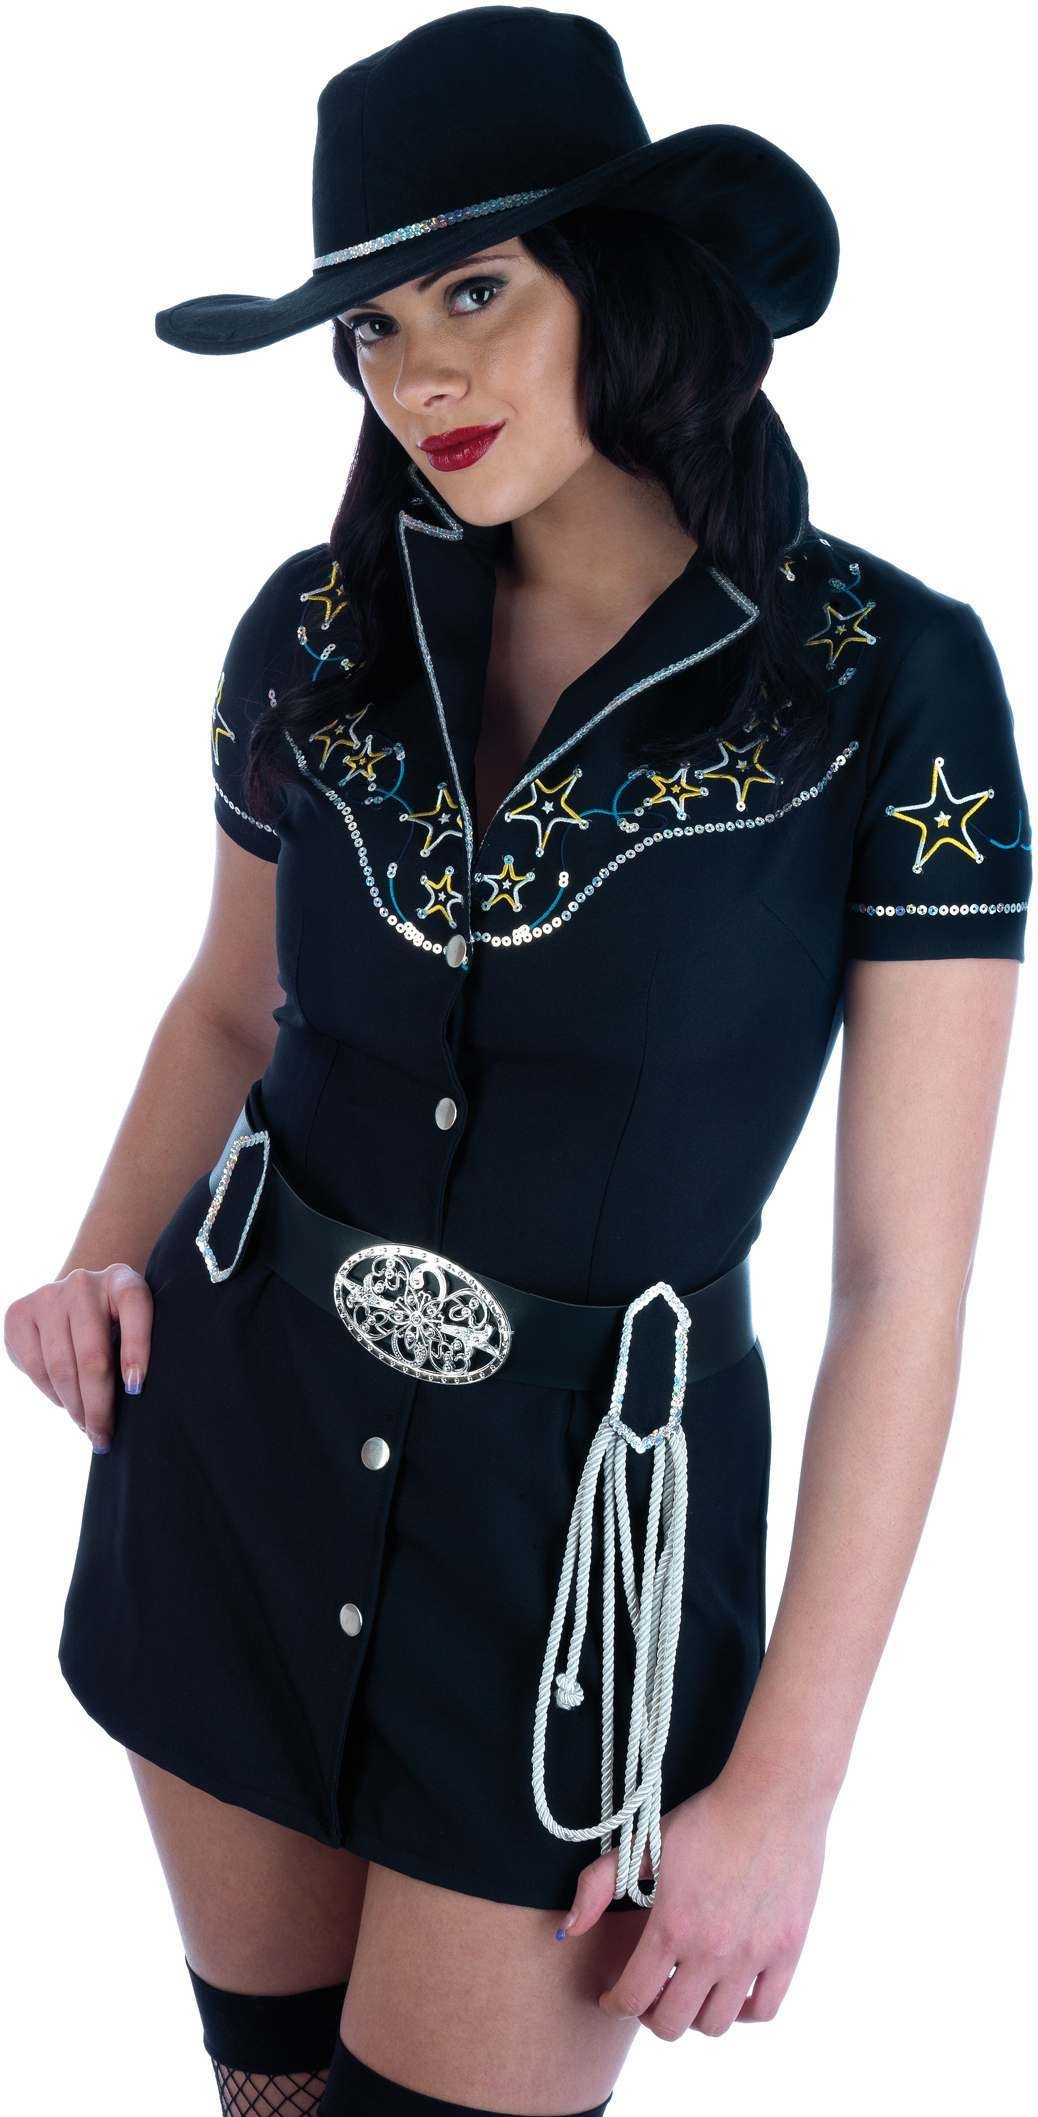 Rhinestone Cow Girl Costume Fancy Dress Costume Ladies (Cowboys/Indians)